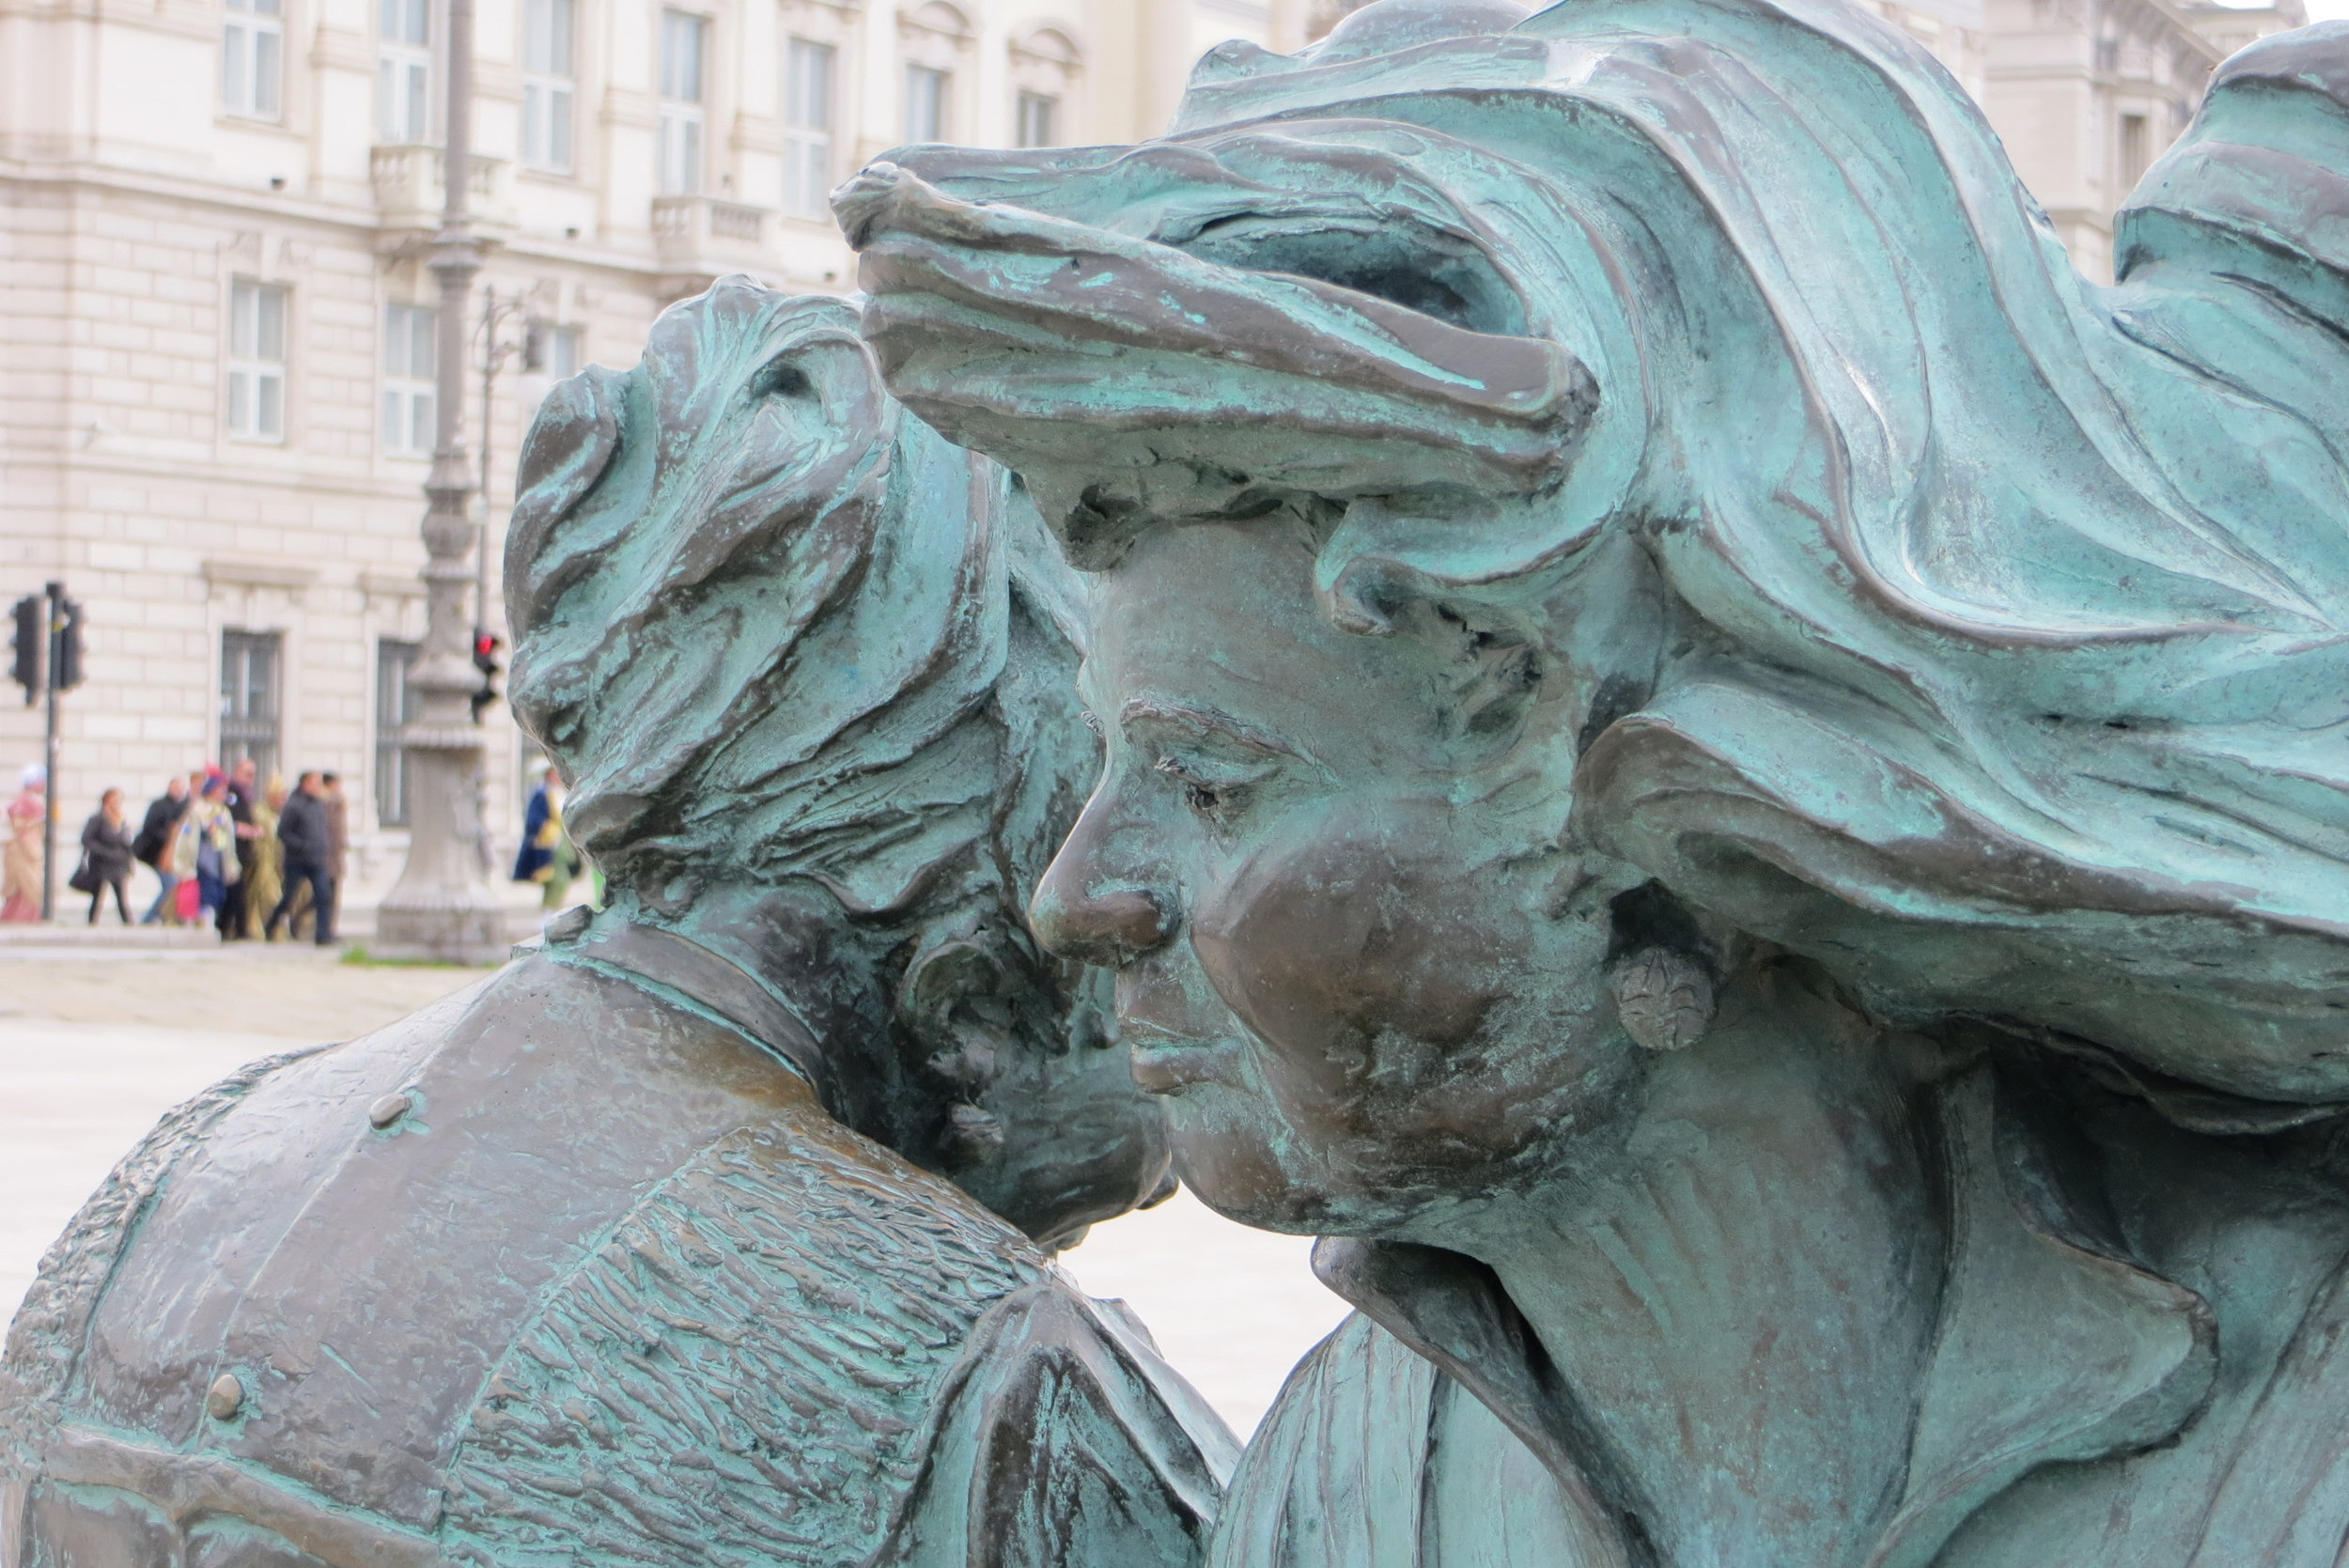 Triestine sisters on the waterfront in front of Piazza dell'Unità, Trieste